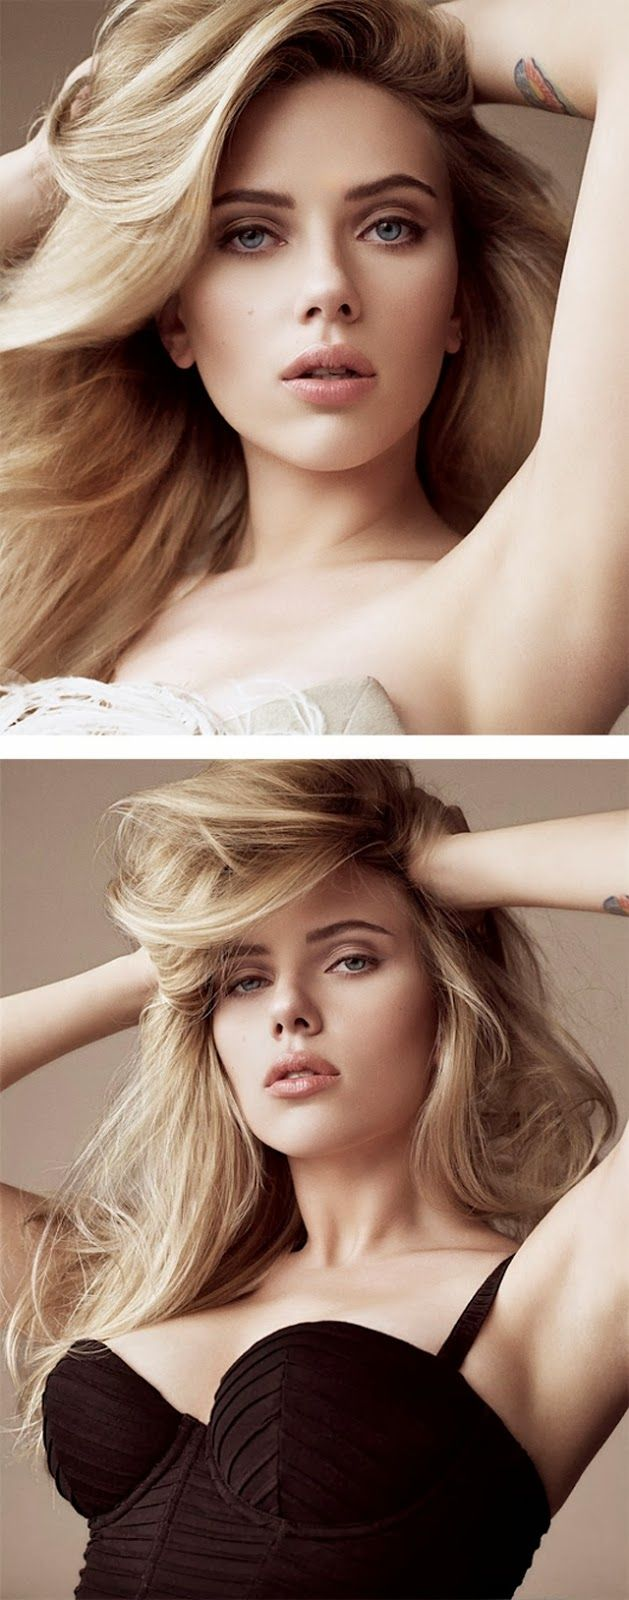 I absolutely love her #ScarlettJohansson